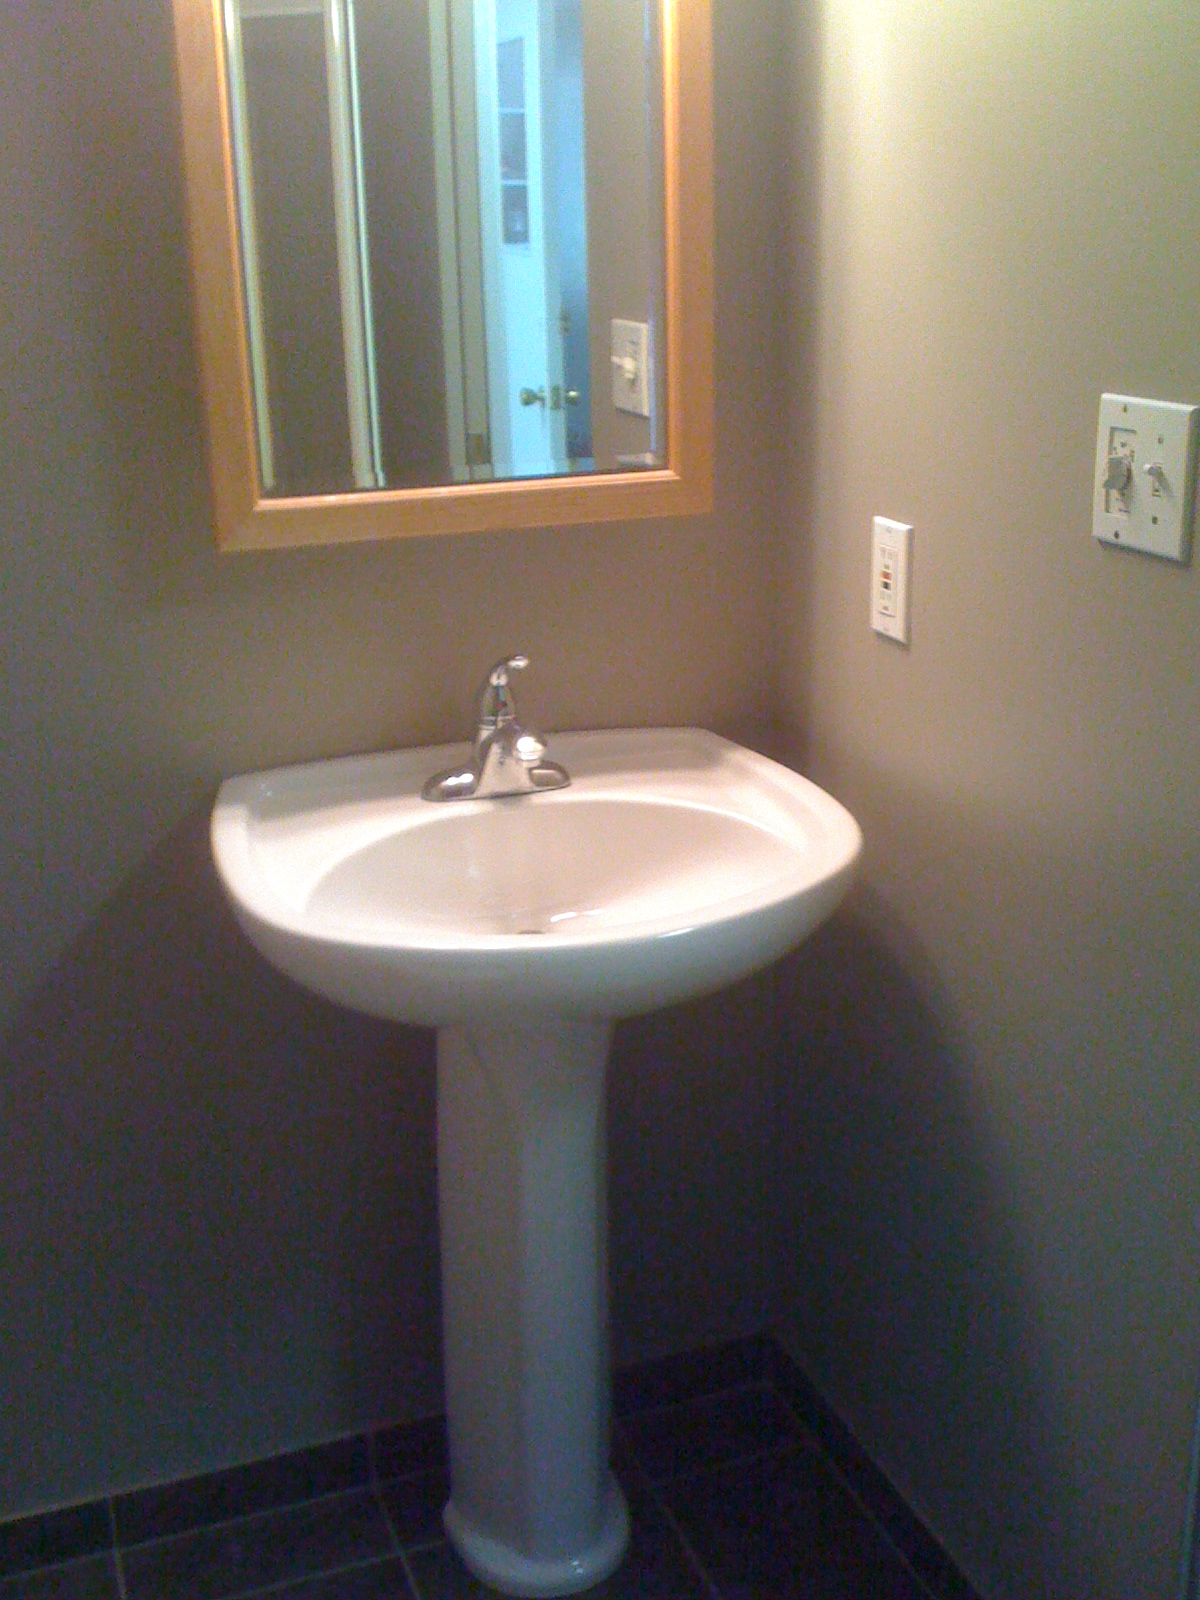 Bathroom vanity job- Coq